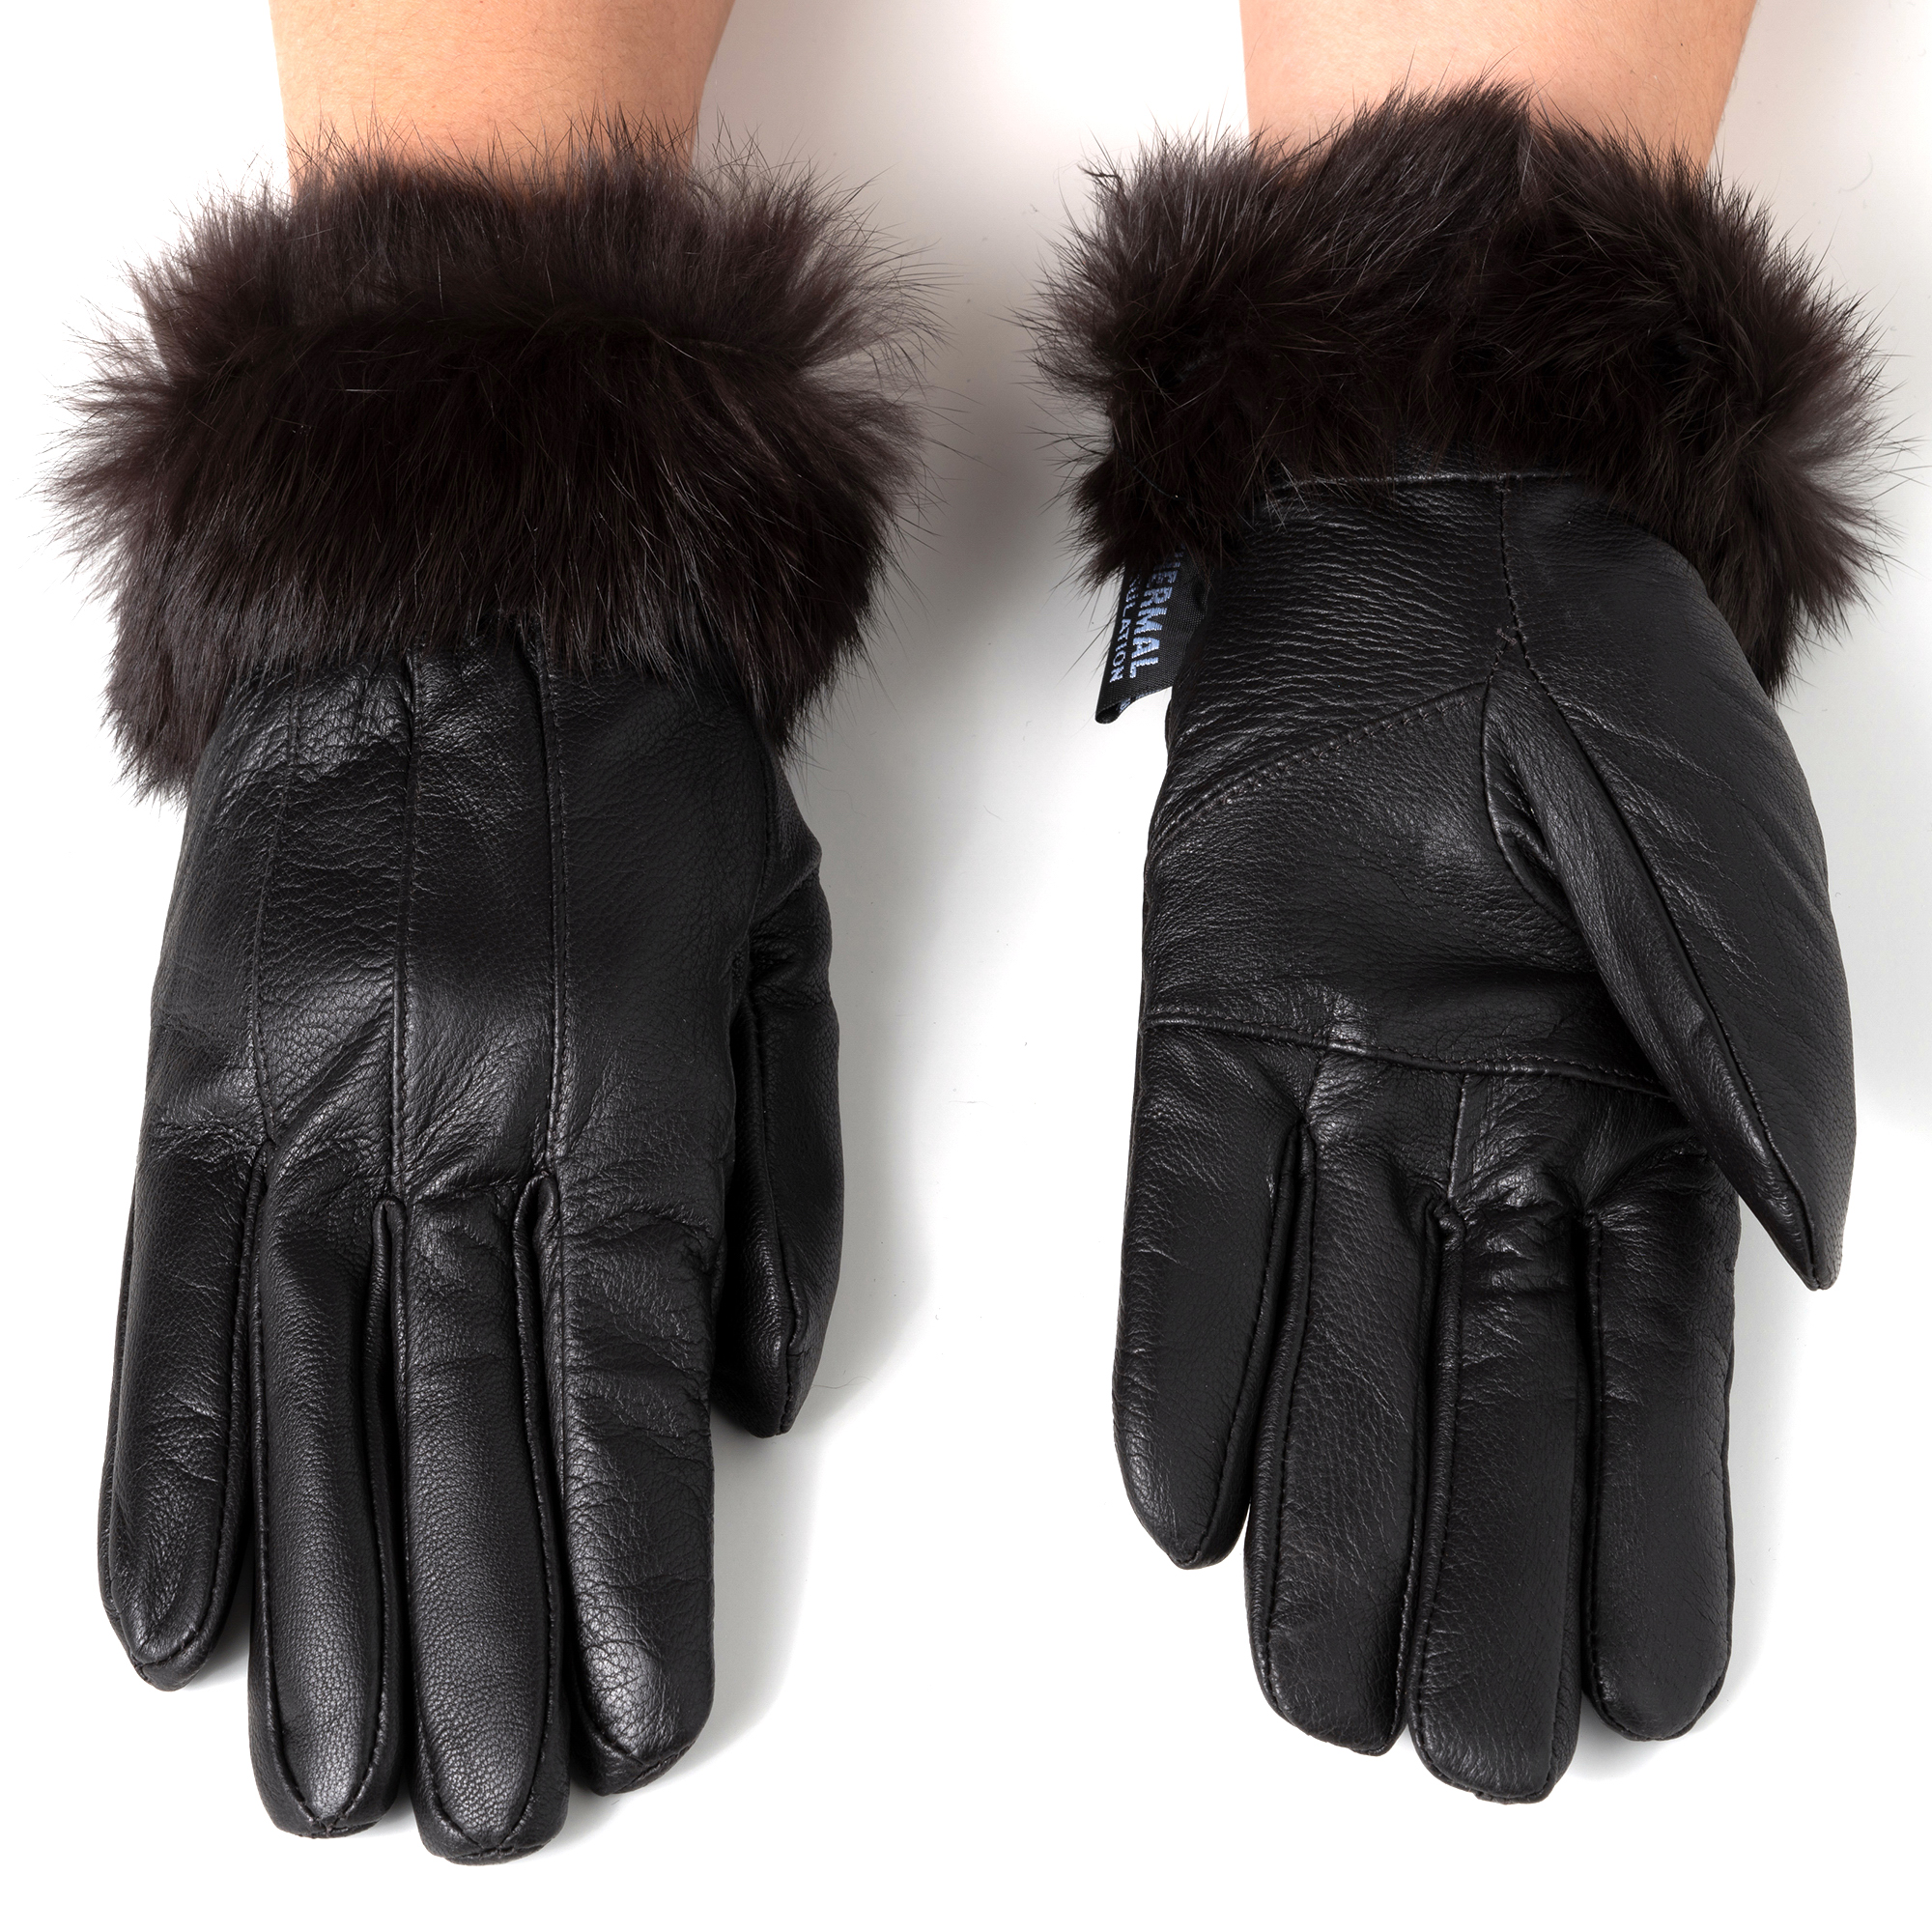 Alpine-Swiss-Womens-Dressy-Gloves-Genuine-Leather-Thermal-Lining-Fur-Trim-Cuff thumbnail 24